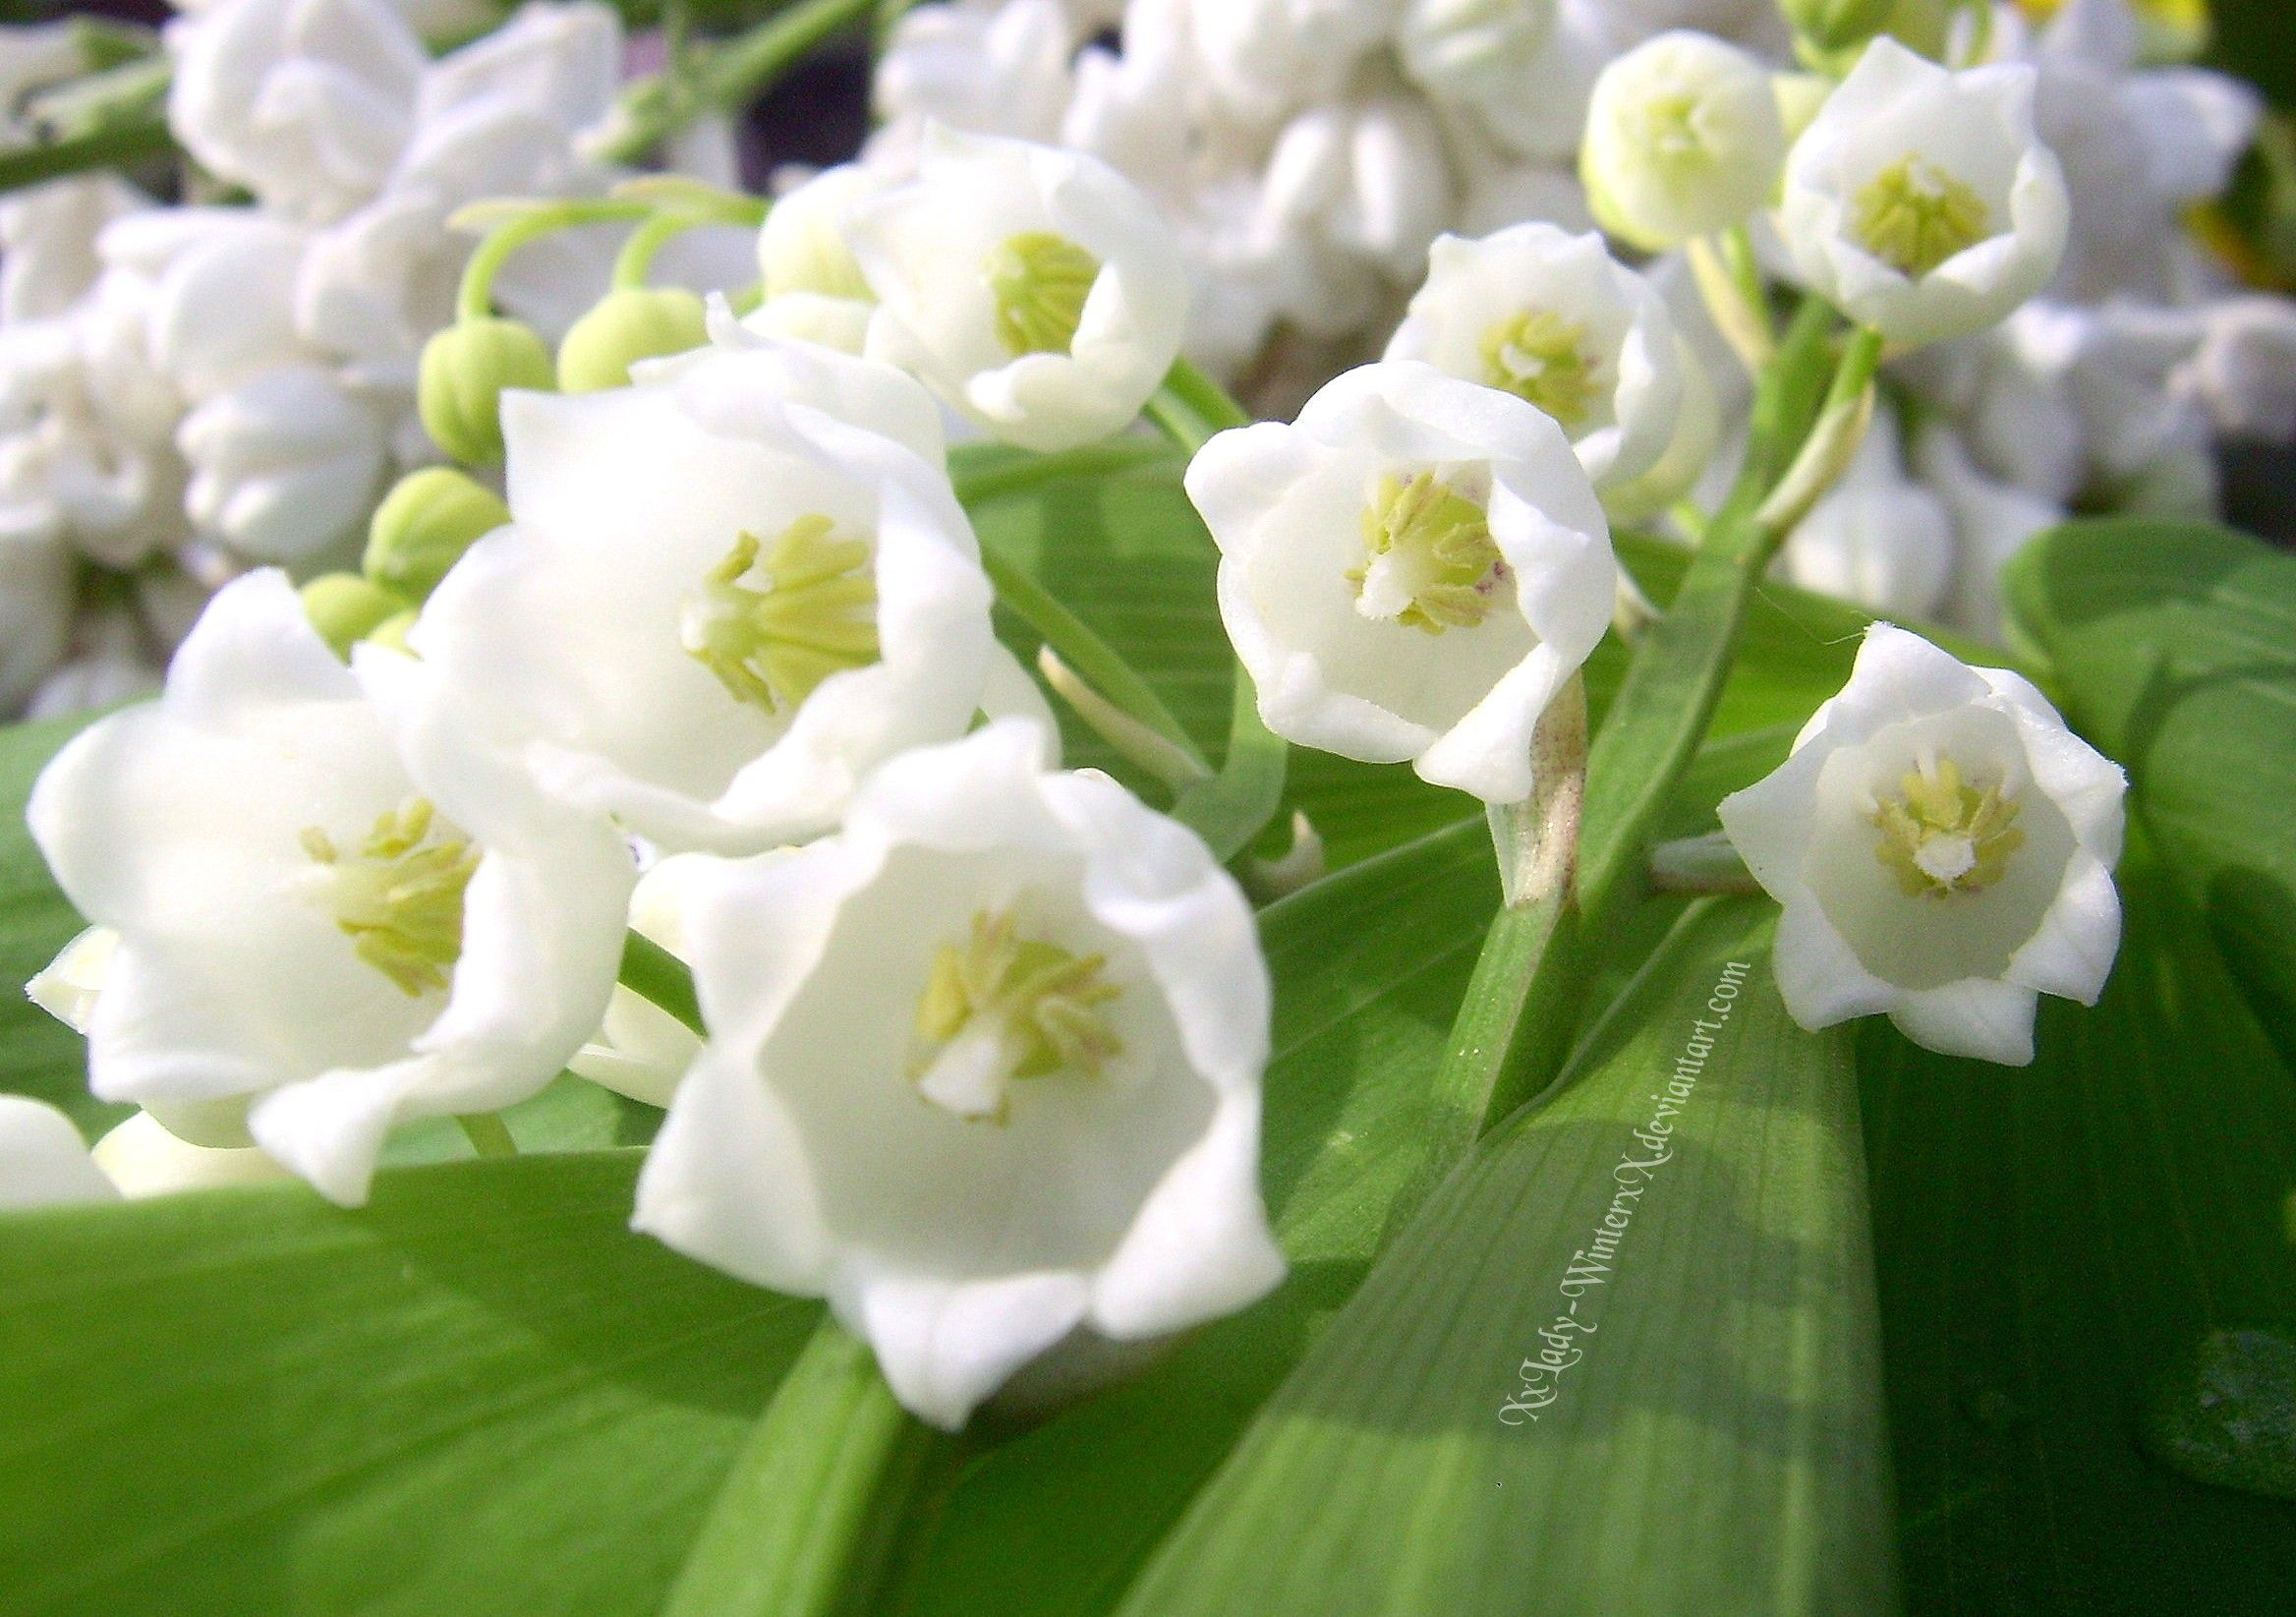 Lily of the Valley smell beautifully Lily of the valley